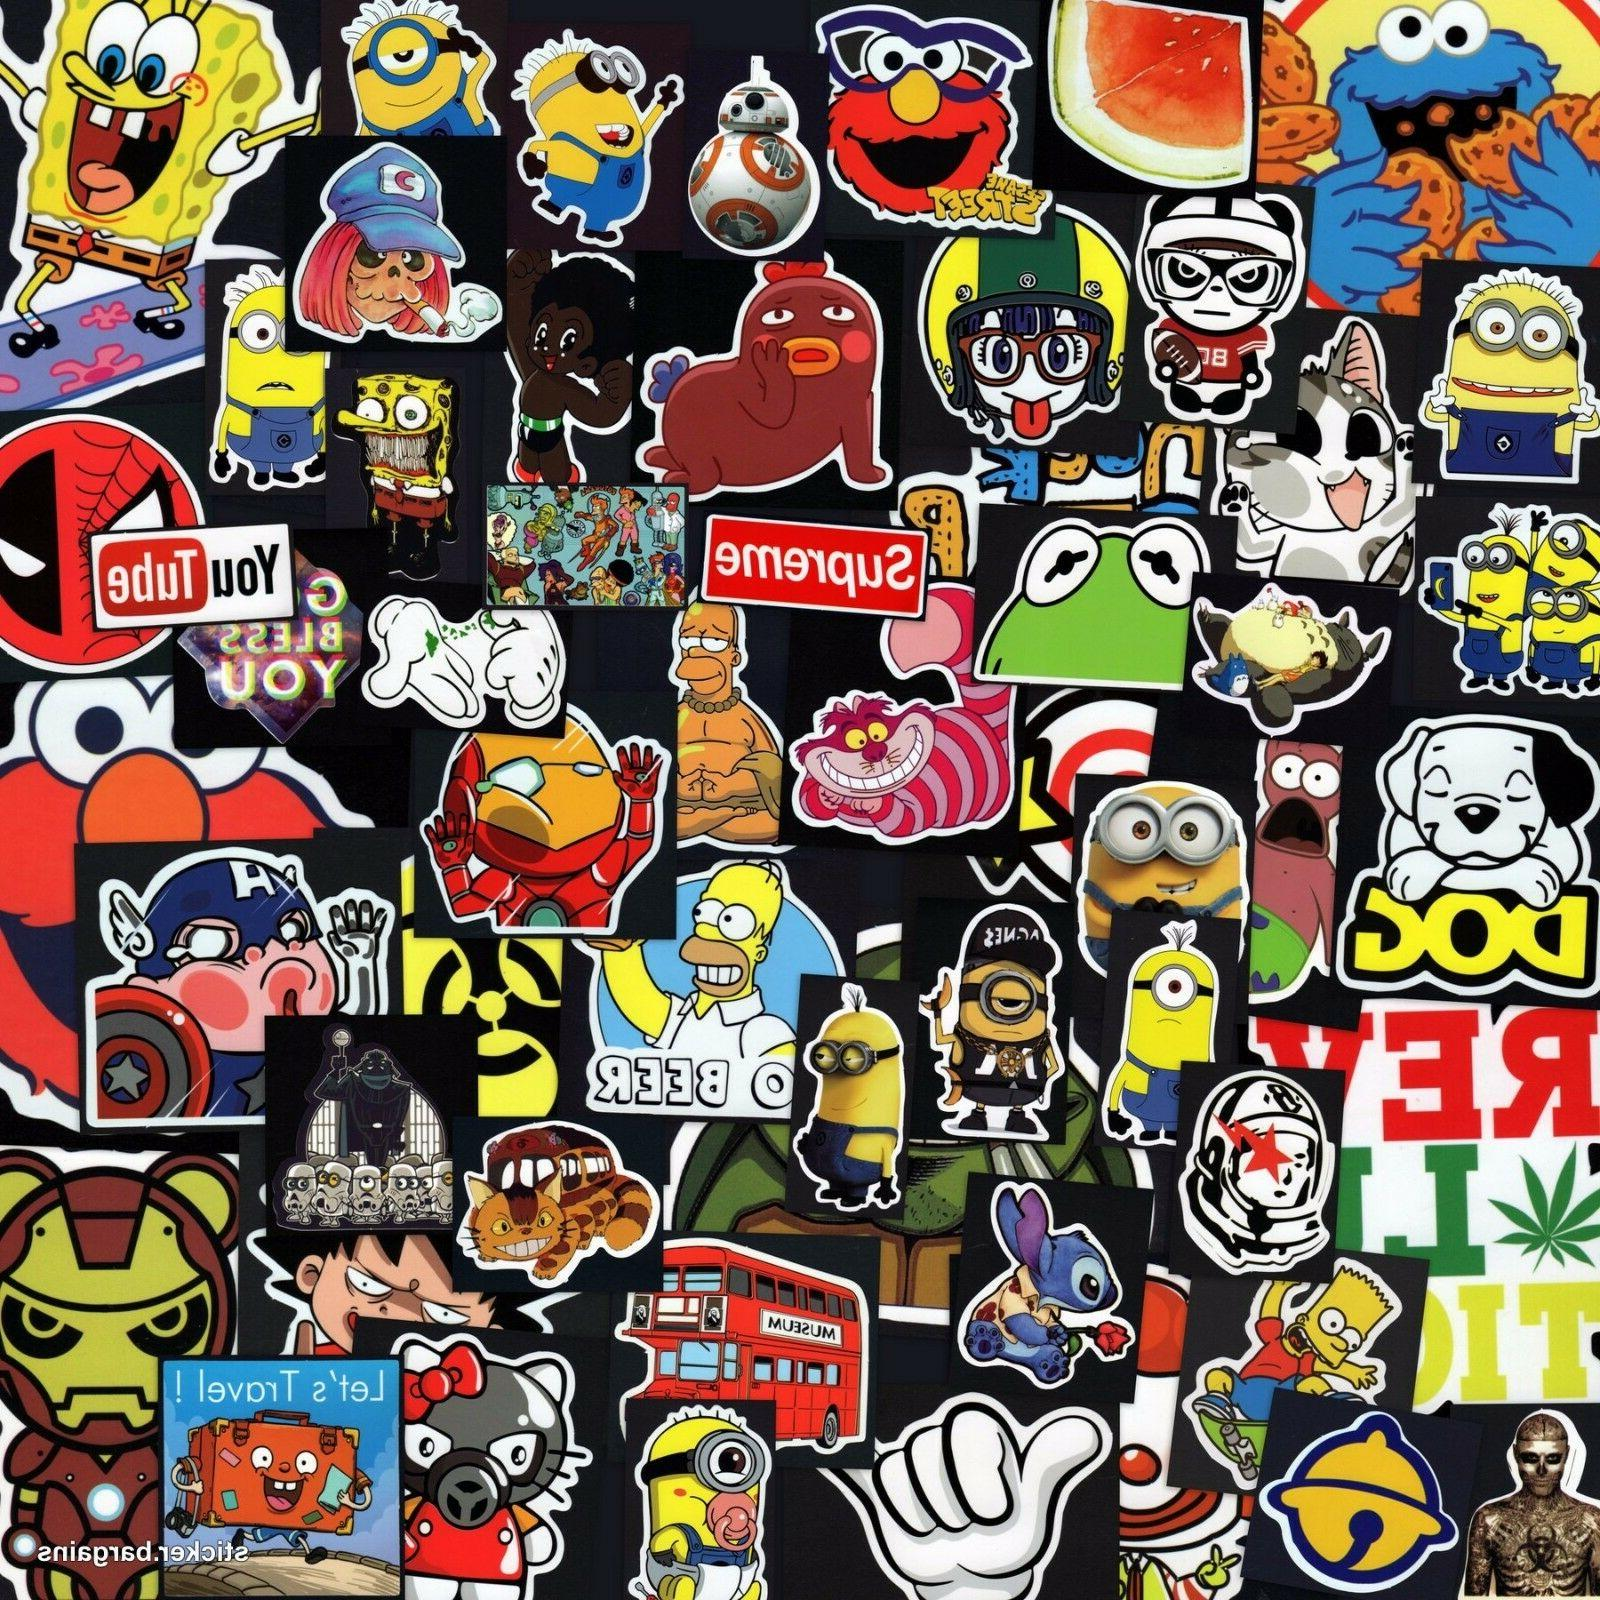 cool funny stickers 60 designs laptop car